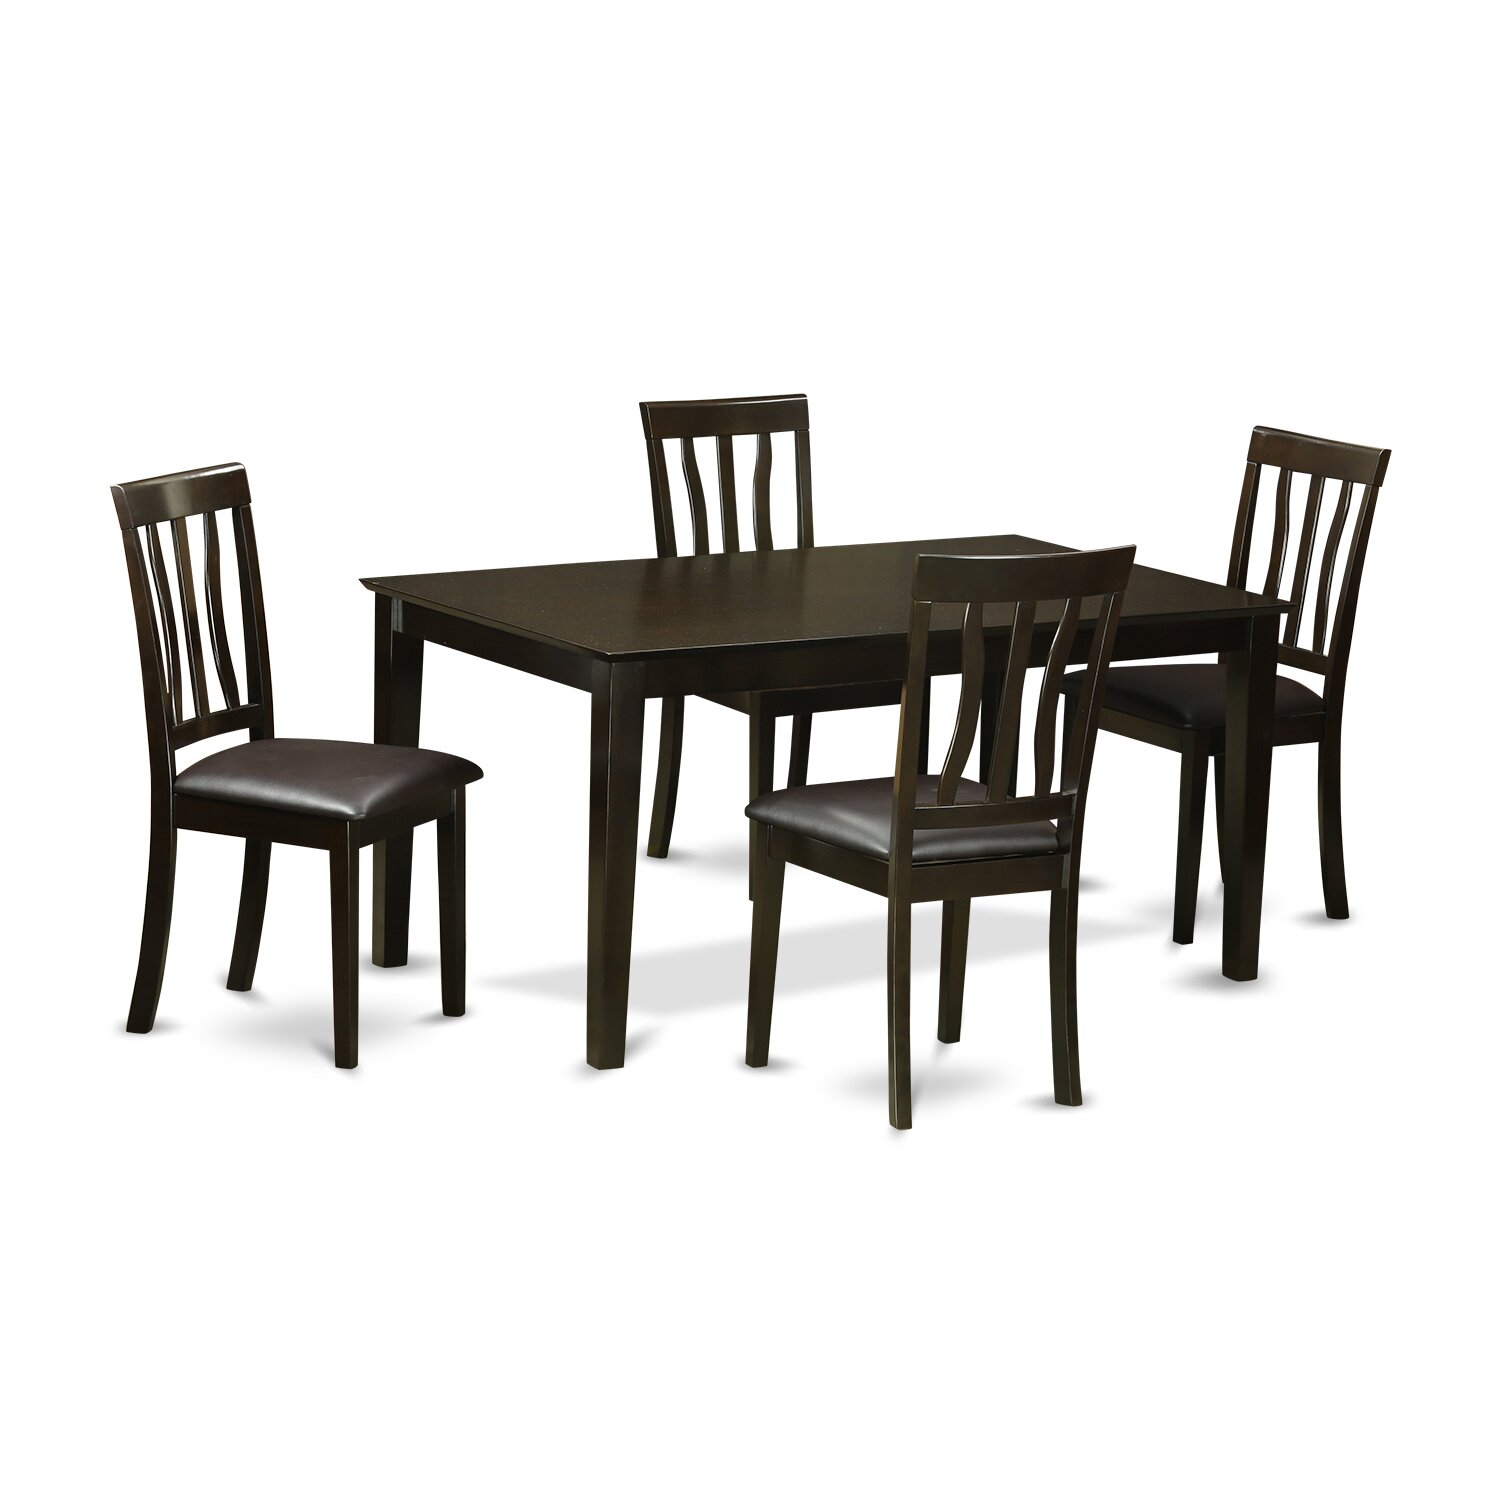 Wooden importers capri 5 piece dining set wayfair for 5 chair dining table